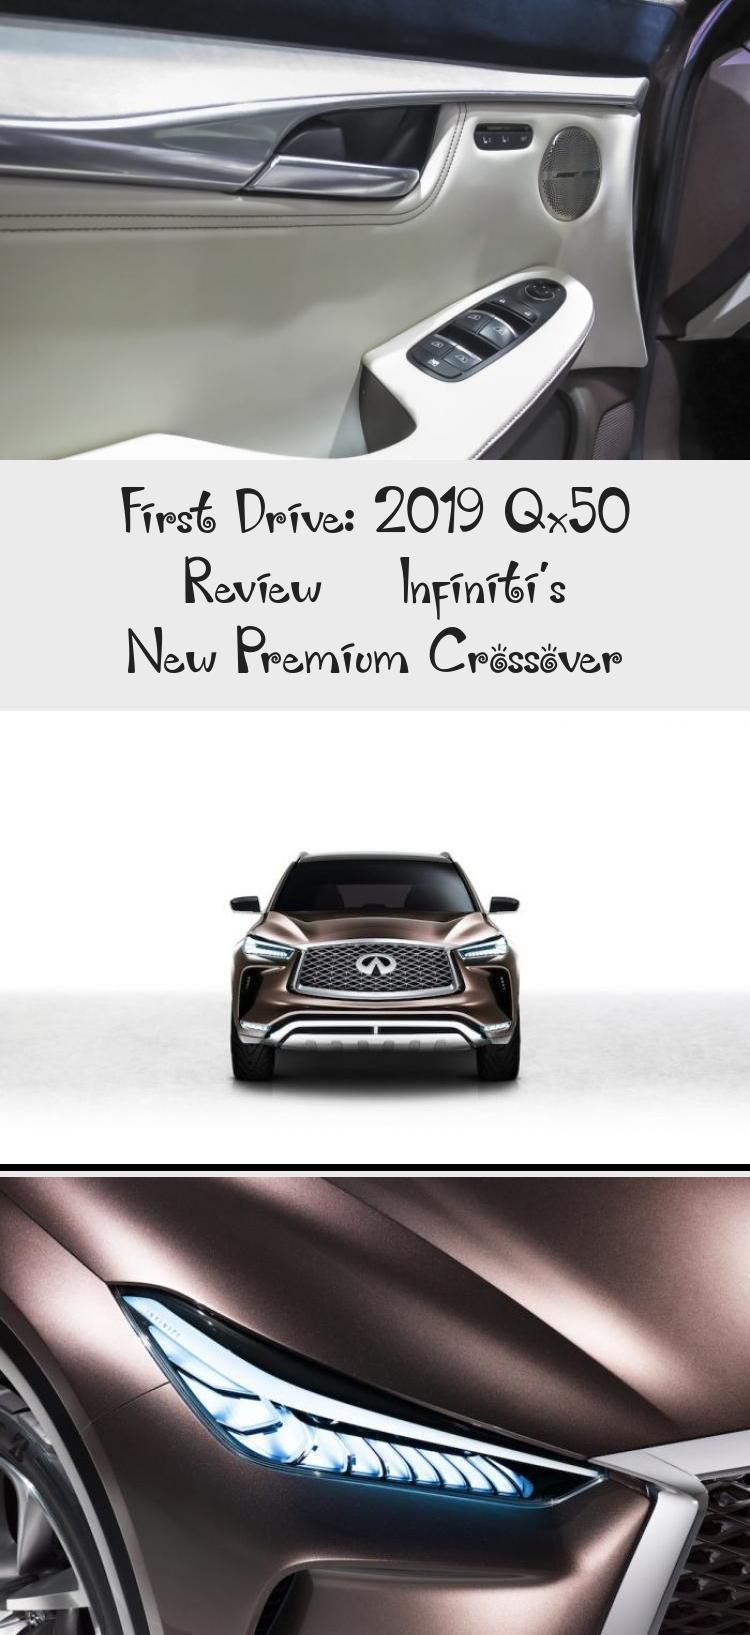 First Drive 2019 Qx50 Review In 2020 First Drive Infiniti Luxury Crossovers